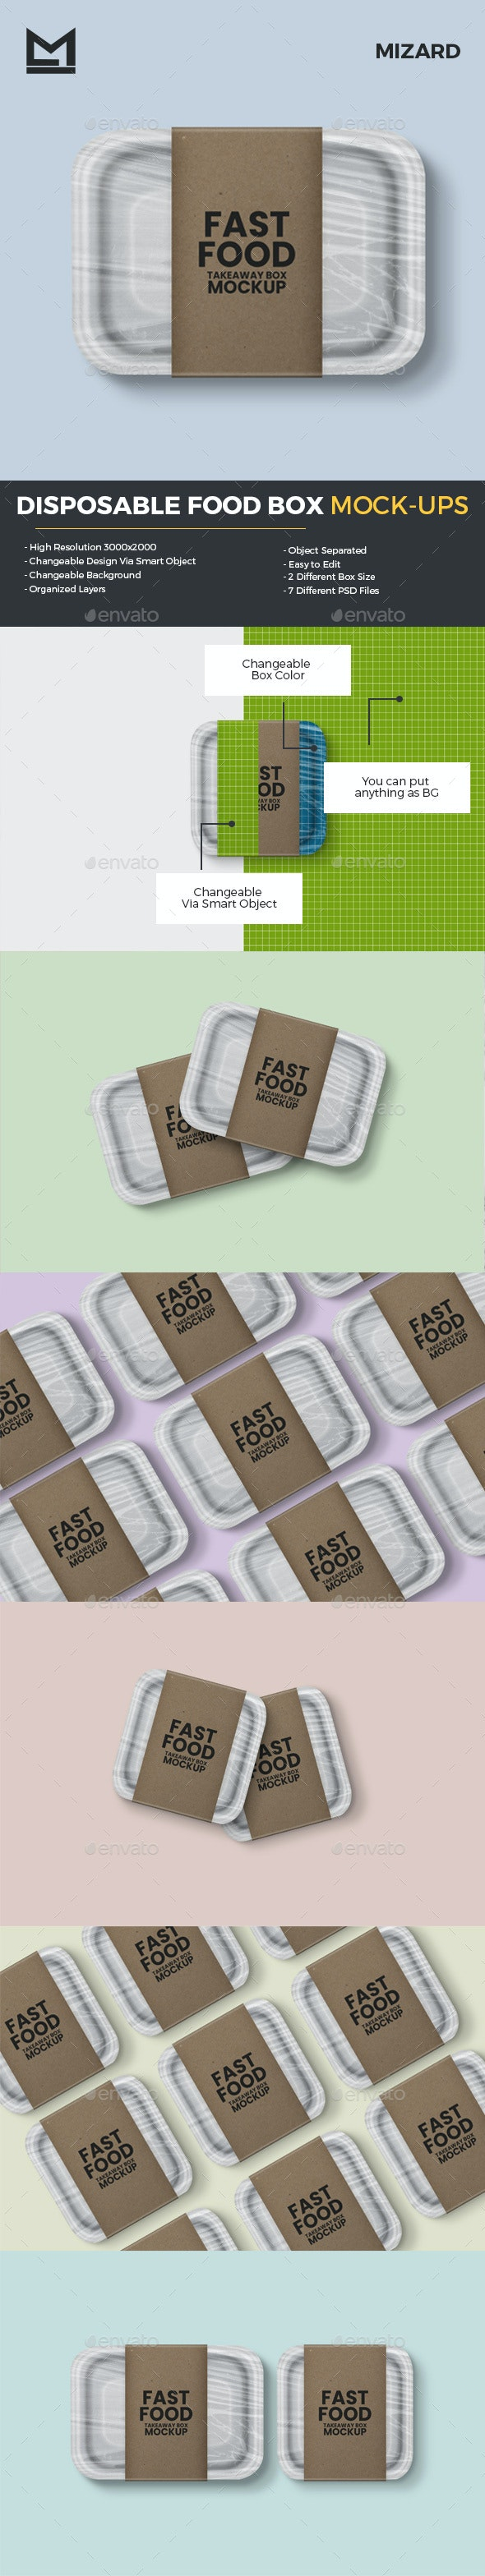 Disposable Food Box Mockup - Food and Drink Packaging